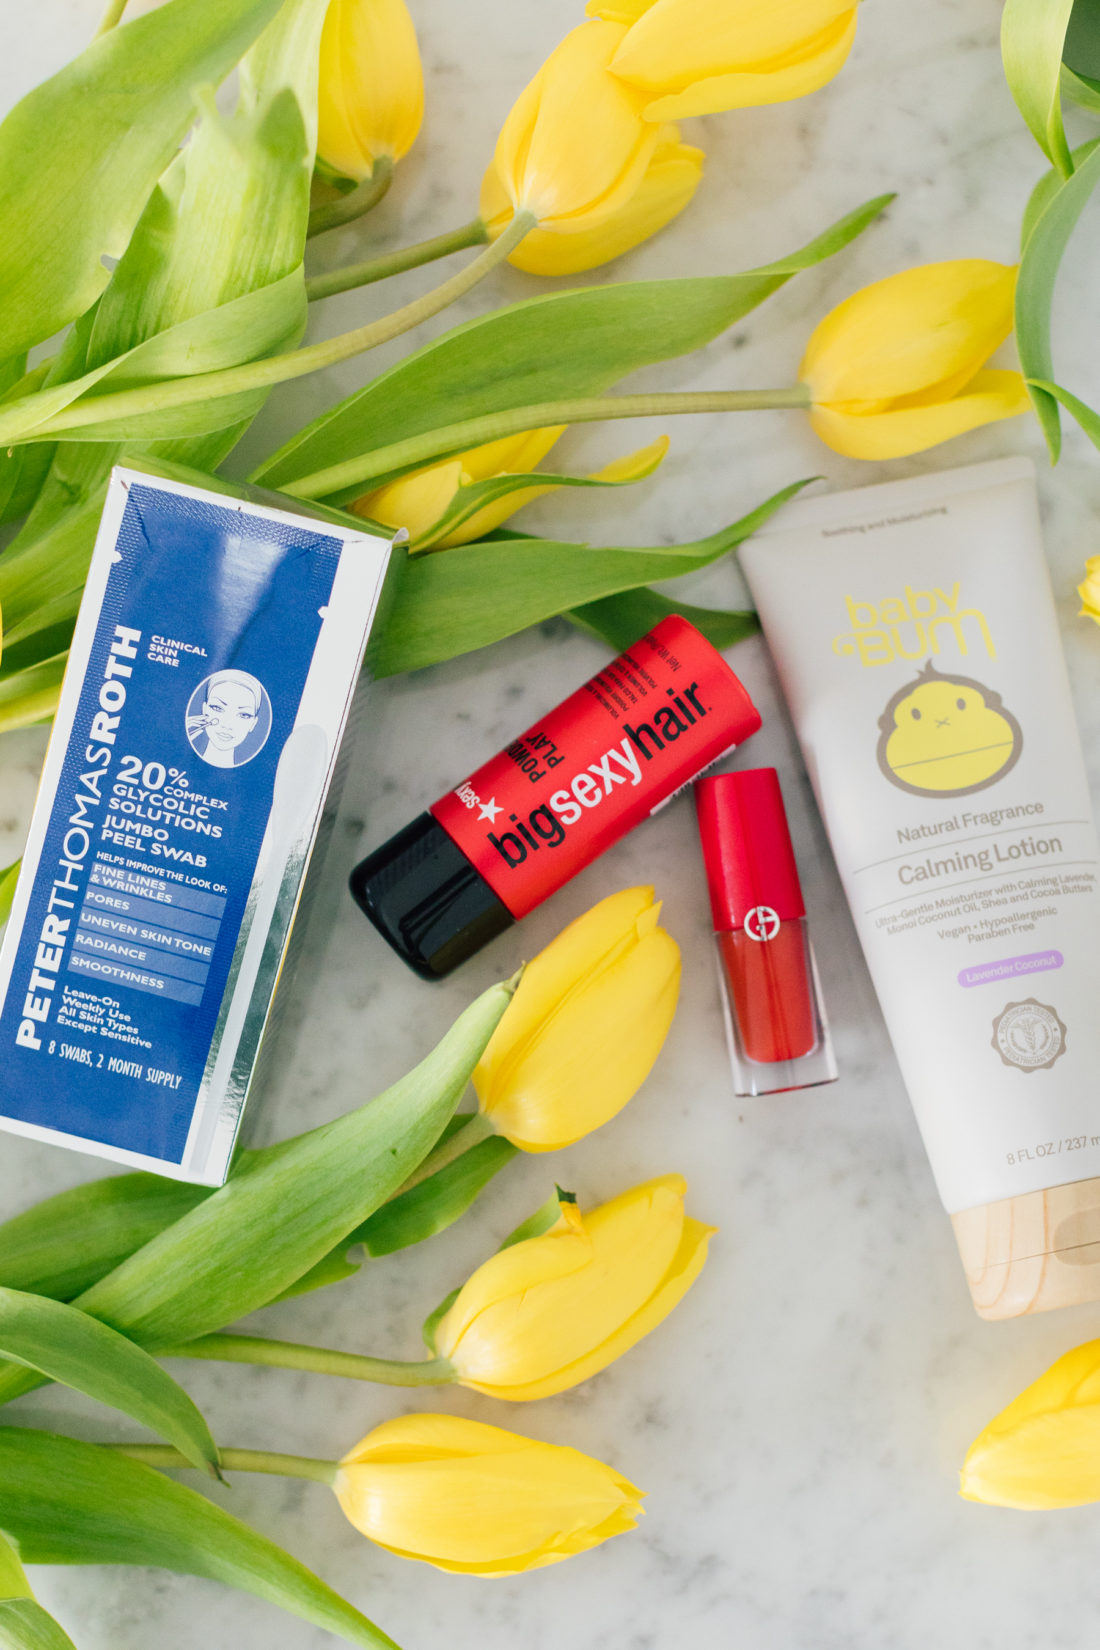 Eva Amurri Martino shares a roundup of her favorite beauty products for december